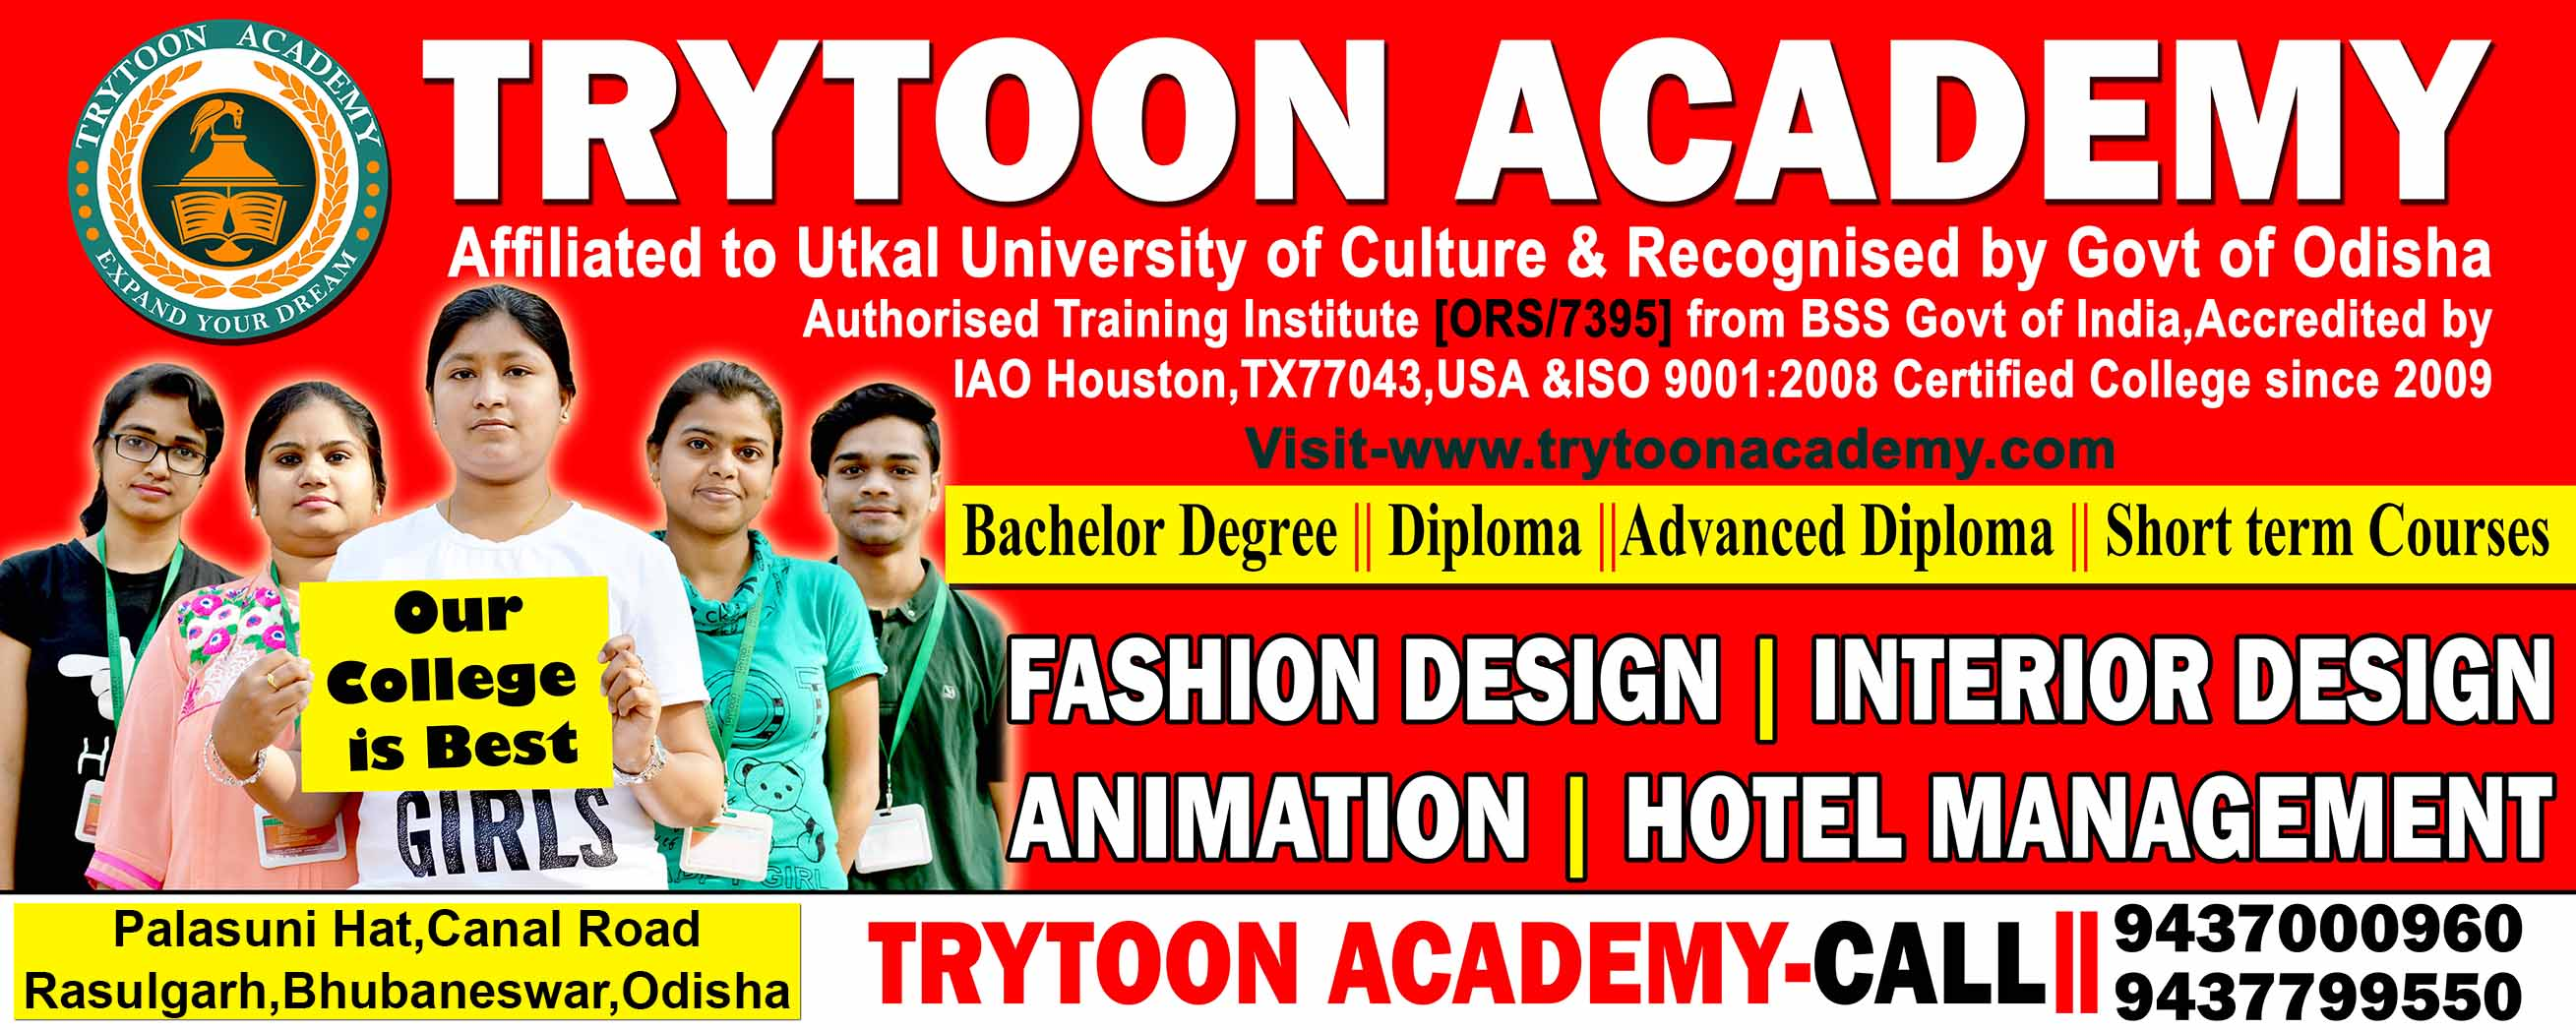 Best No1 College for Fashion Design,Interior Design,Hotel Management and Animation courses